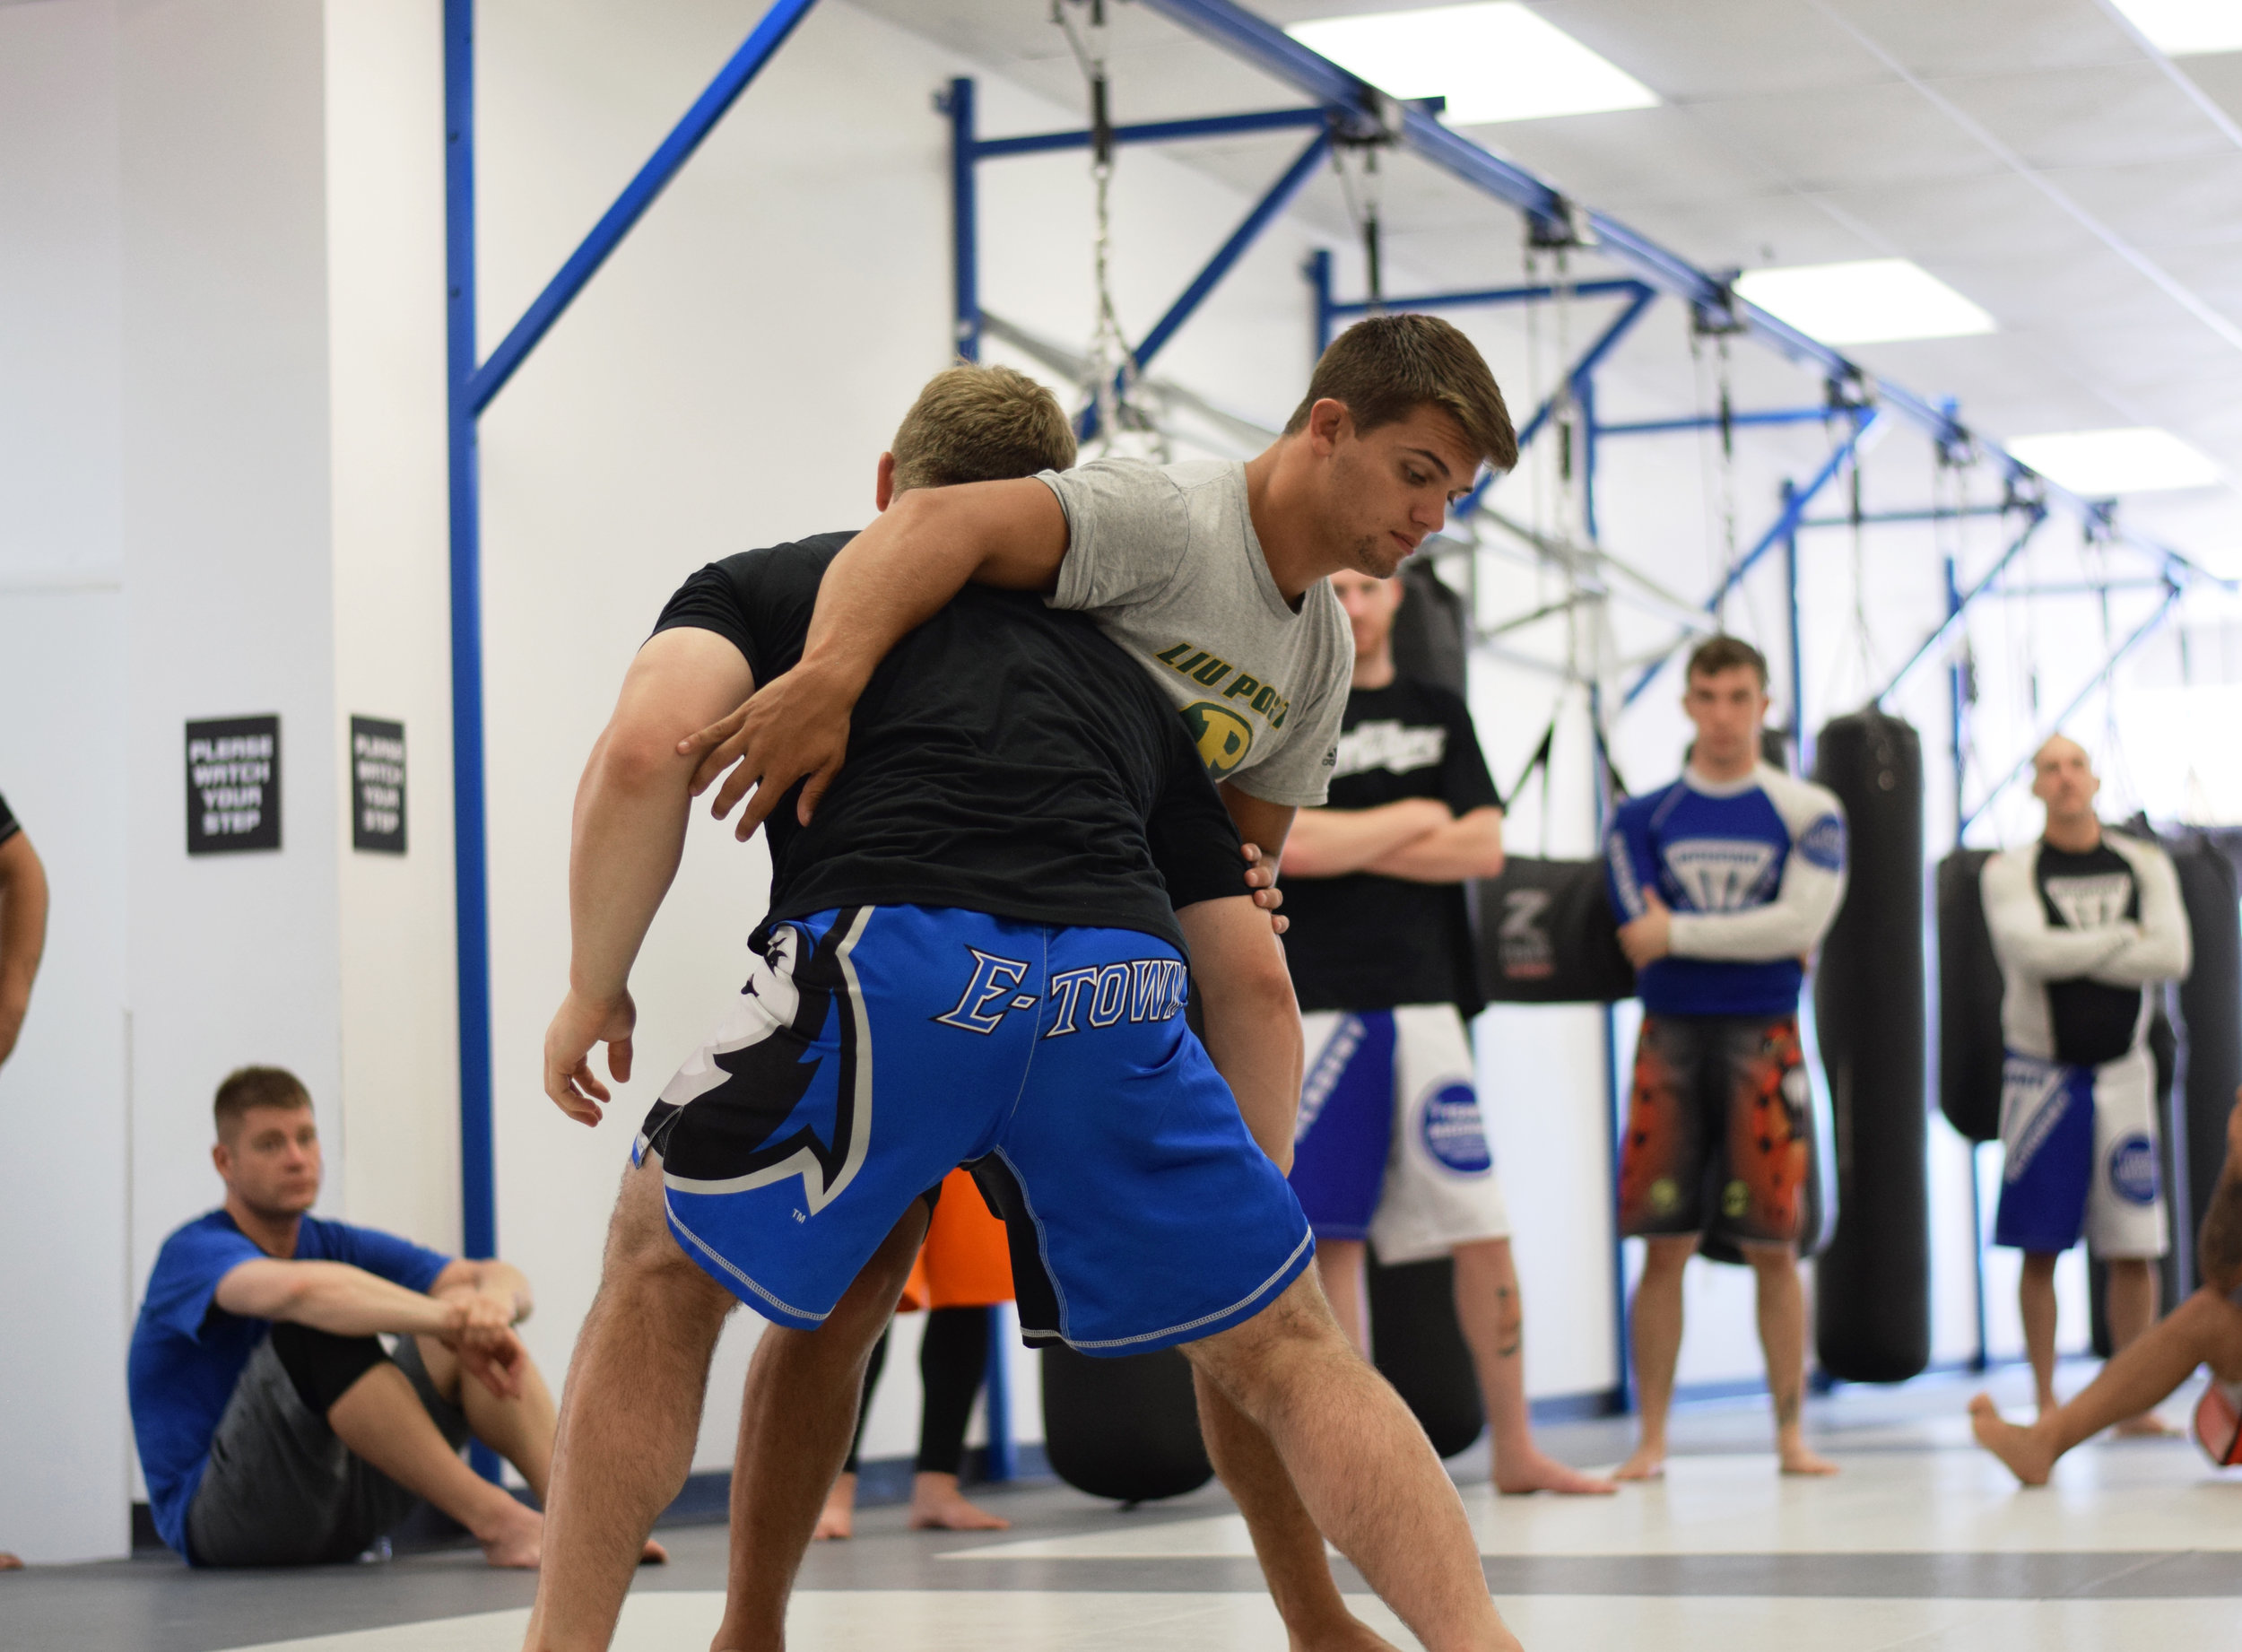 Wrestling seminar with All-American Wrestler and Team Madama Member Julian Meaney